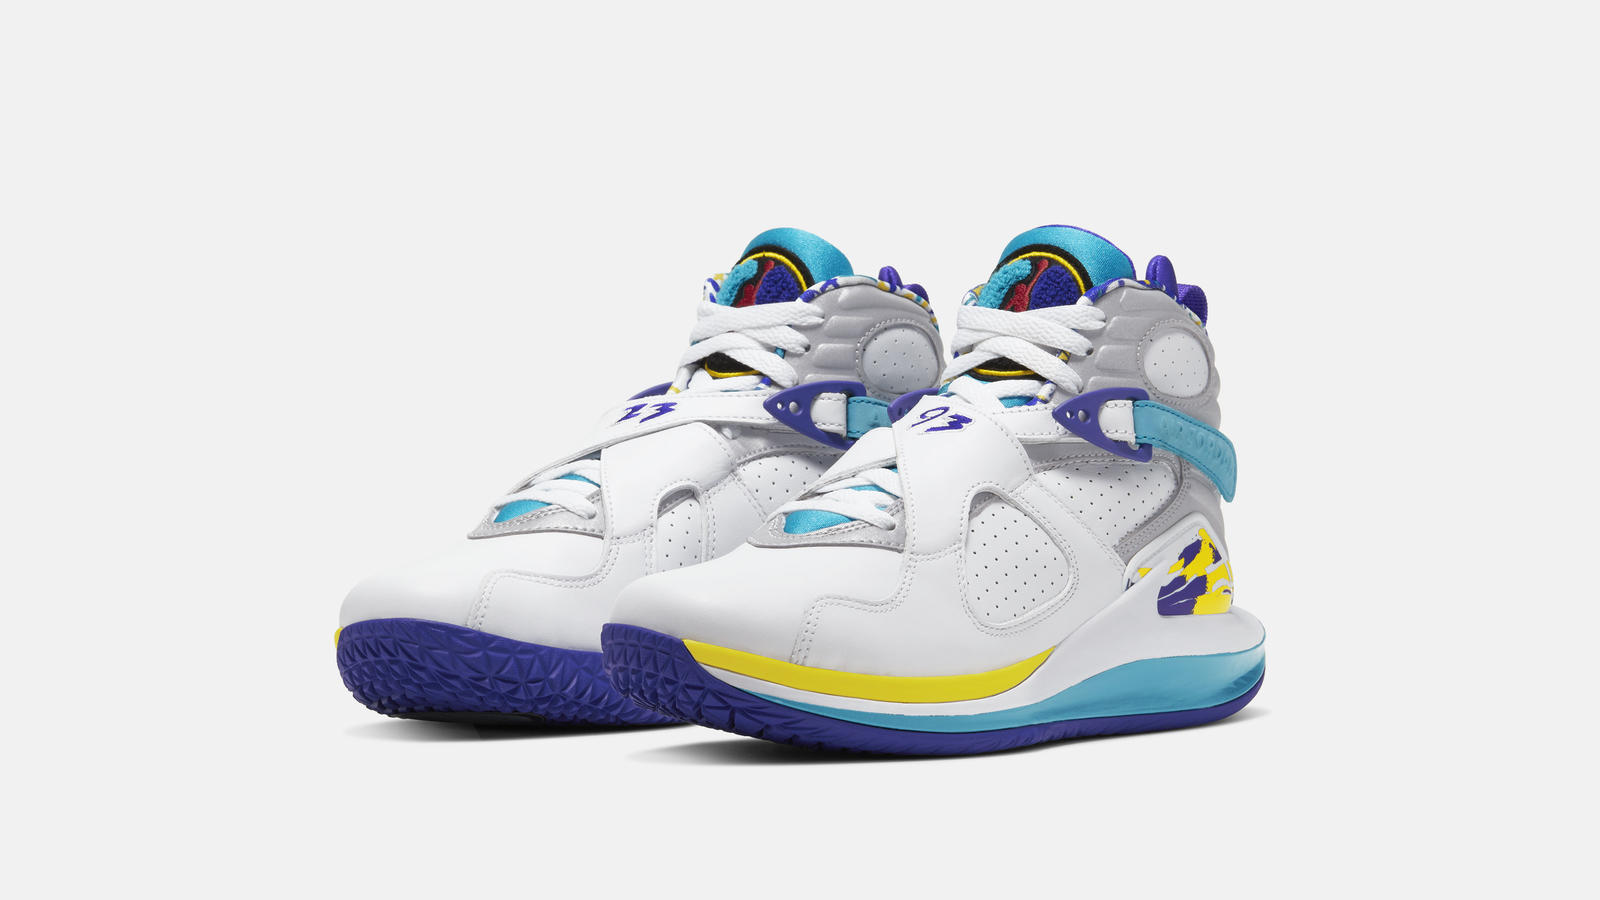 915ea4e4ce0 NikeCourt Air Zoom Zero x Air Jordan 8 Aqua Official Images and ...